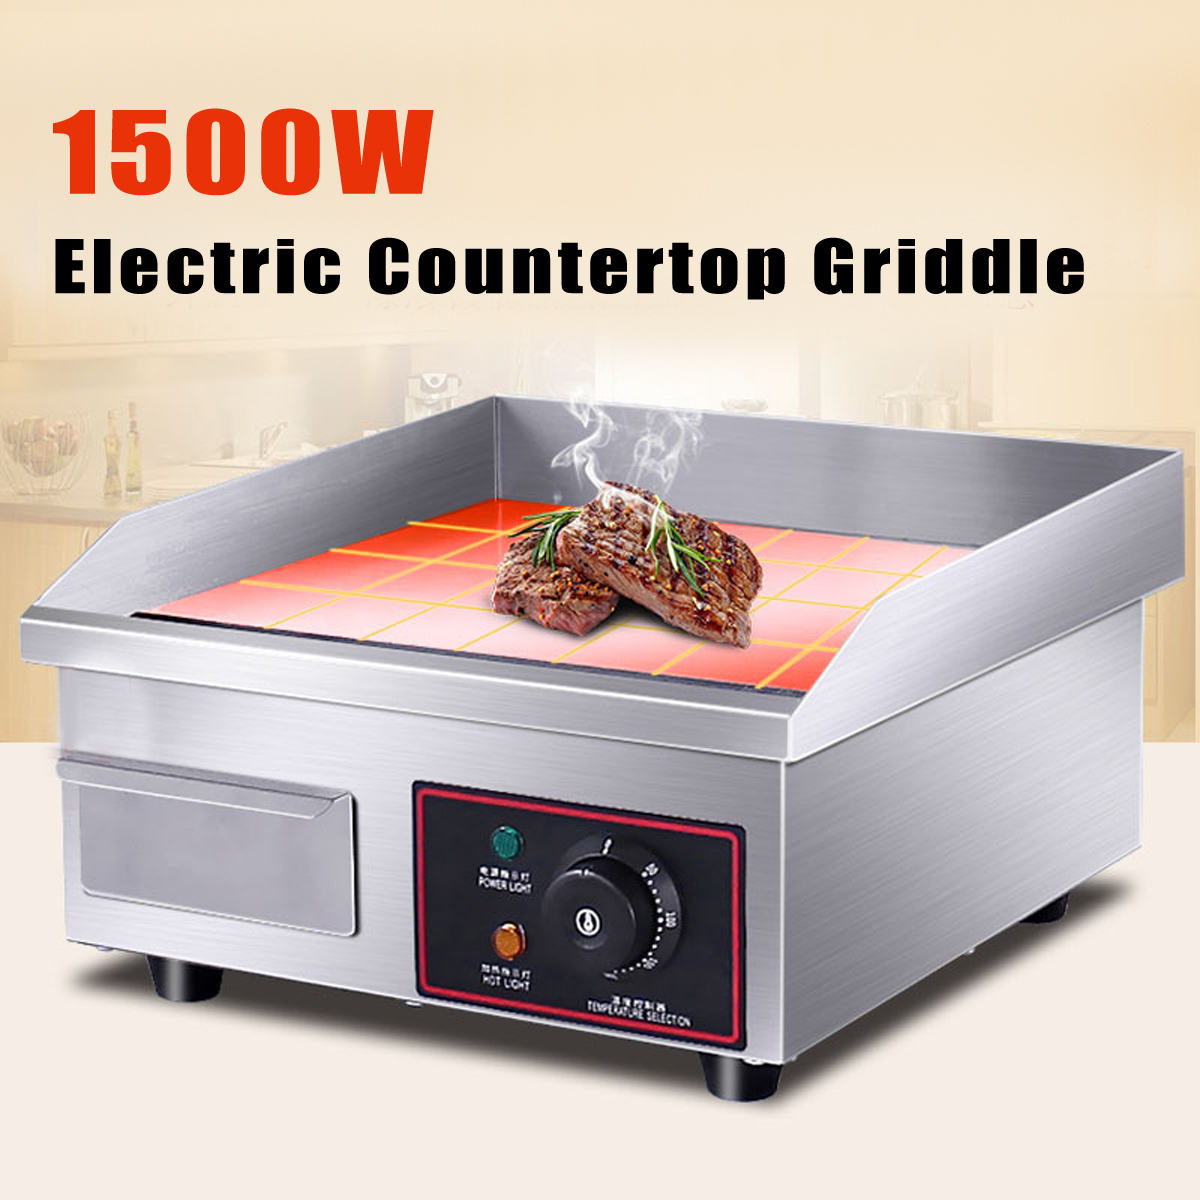 1500W 220V Electric Heating Griddle Stainless Steel Electric Countertop Griddle Flat Top Commercial Restaurant Grill BBQ цена 2017